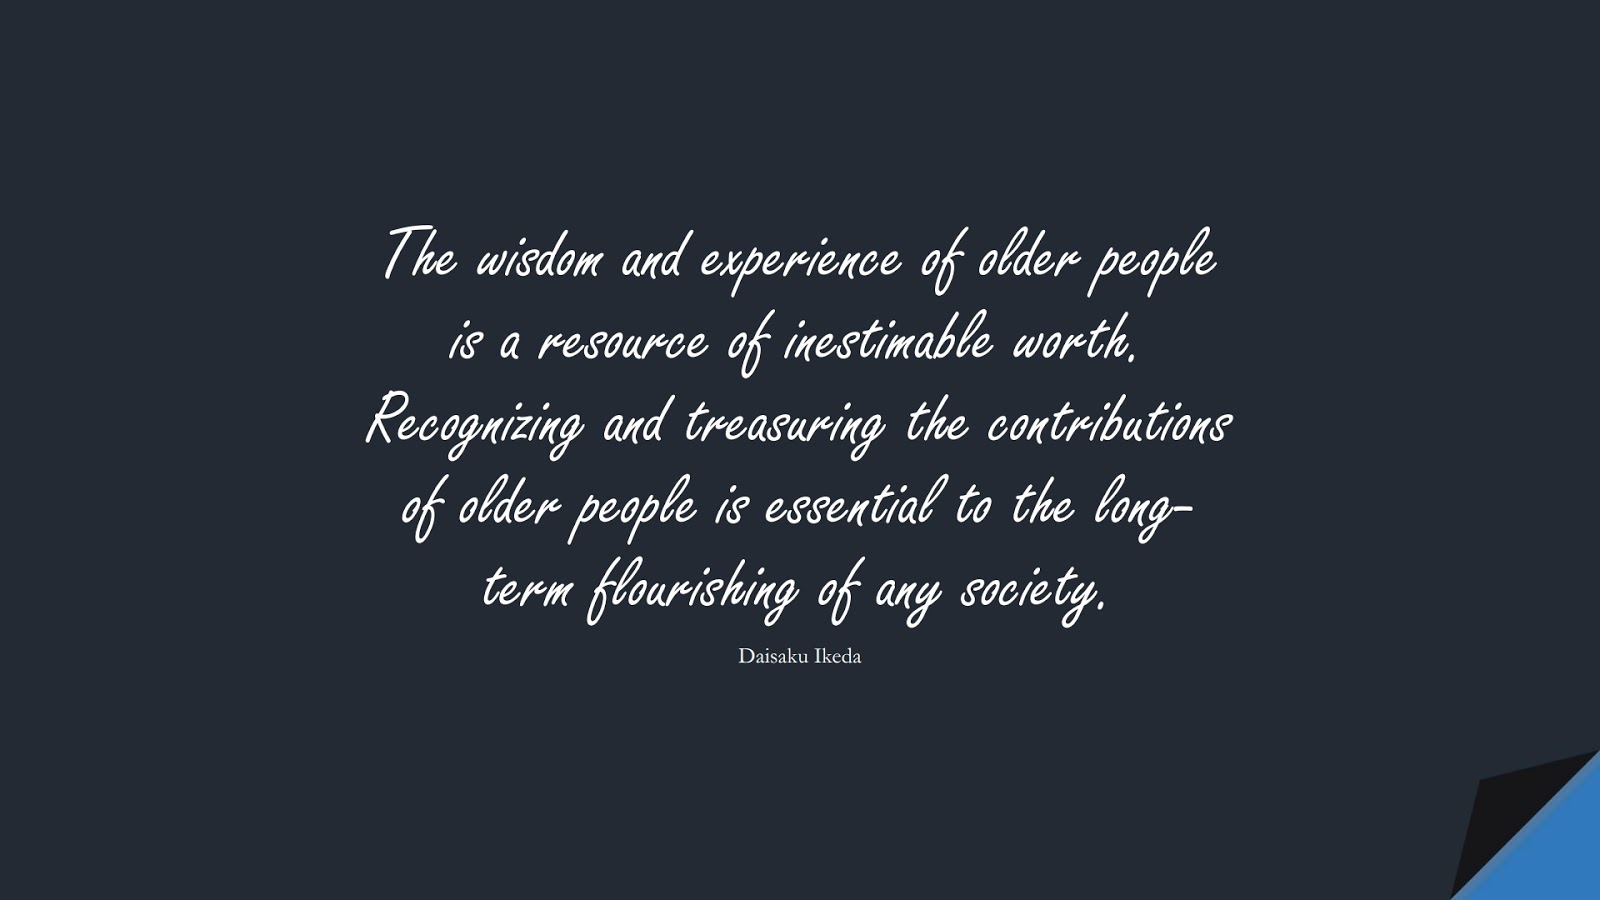 The wisdom and experience of older people is a resource of inestimable worth. Recognizing and treasuring the contributions of older people is essential to the long-term flourishing of any society. (Daisaku Ikeda);  #WordsofWisdom